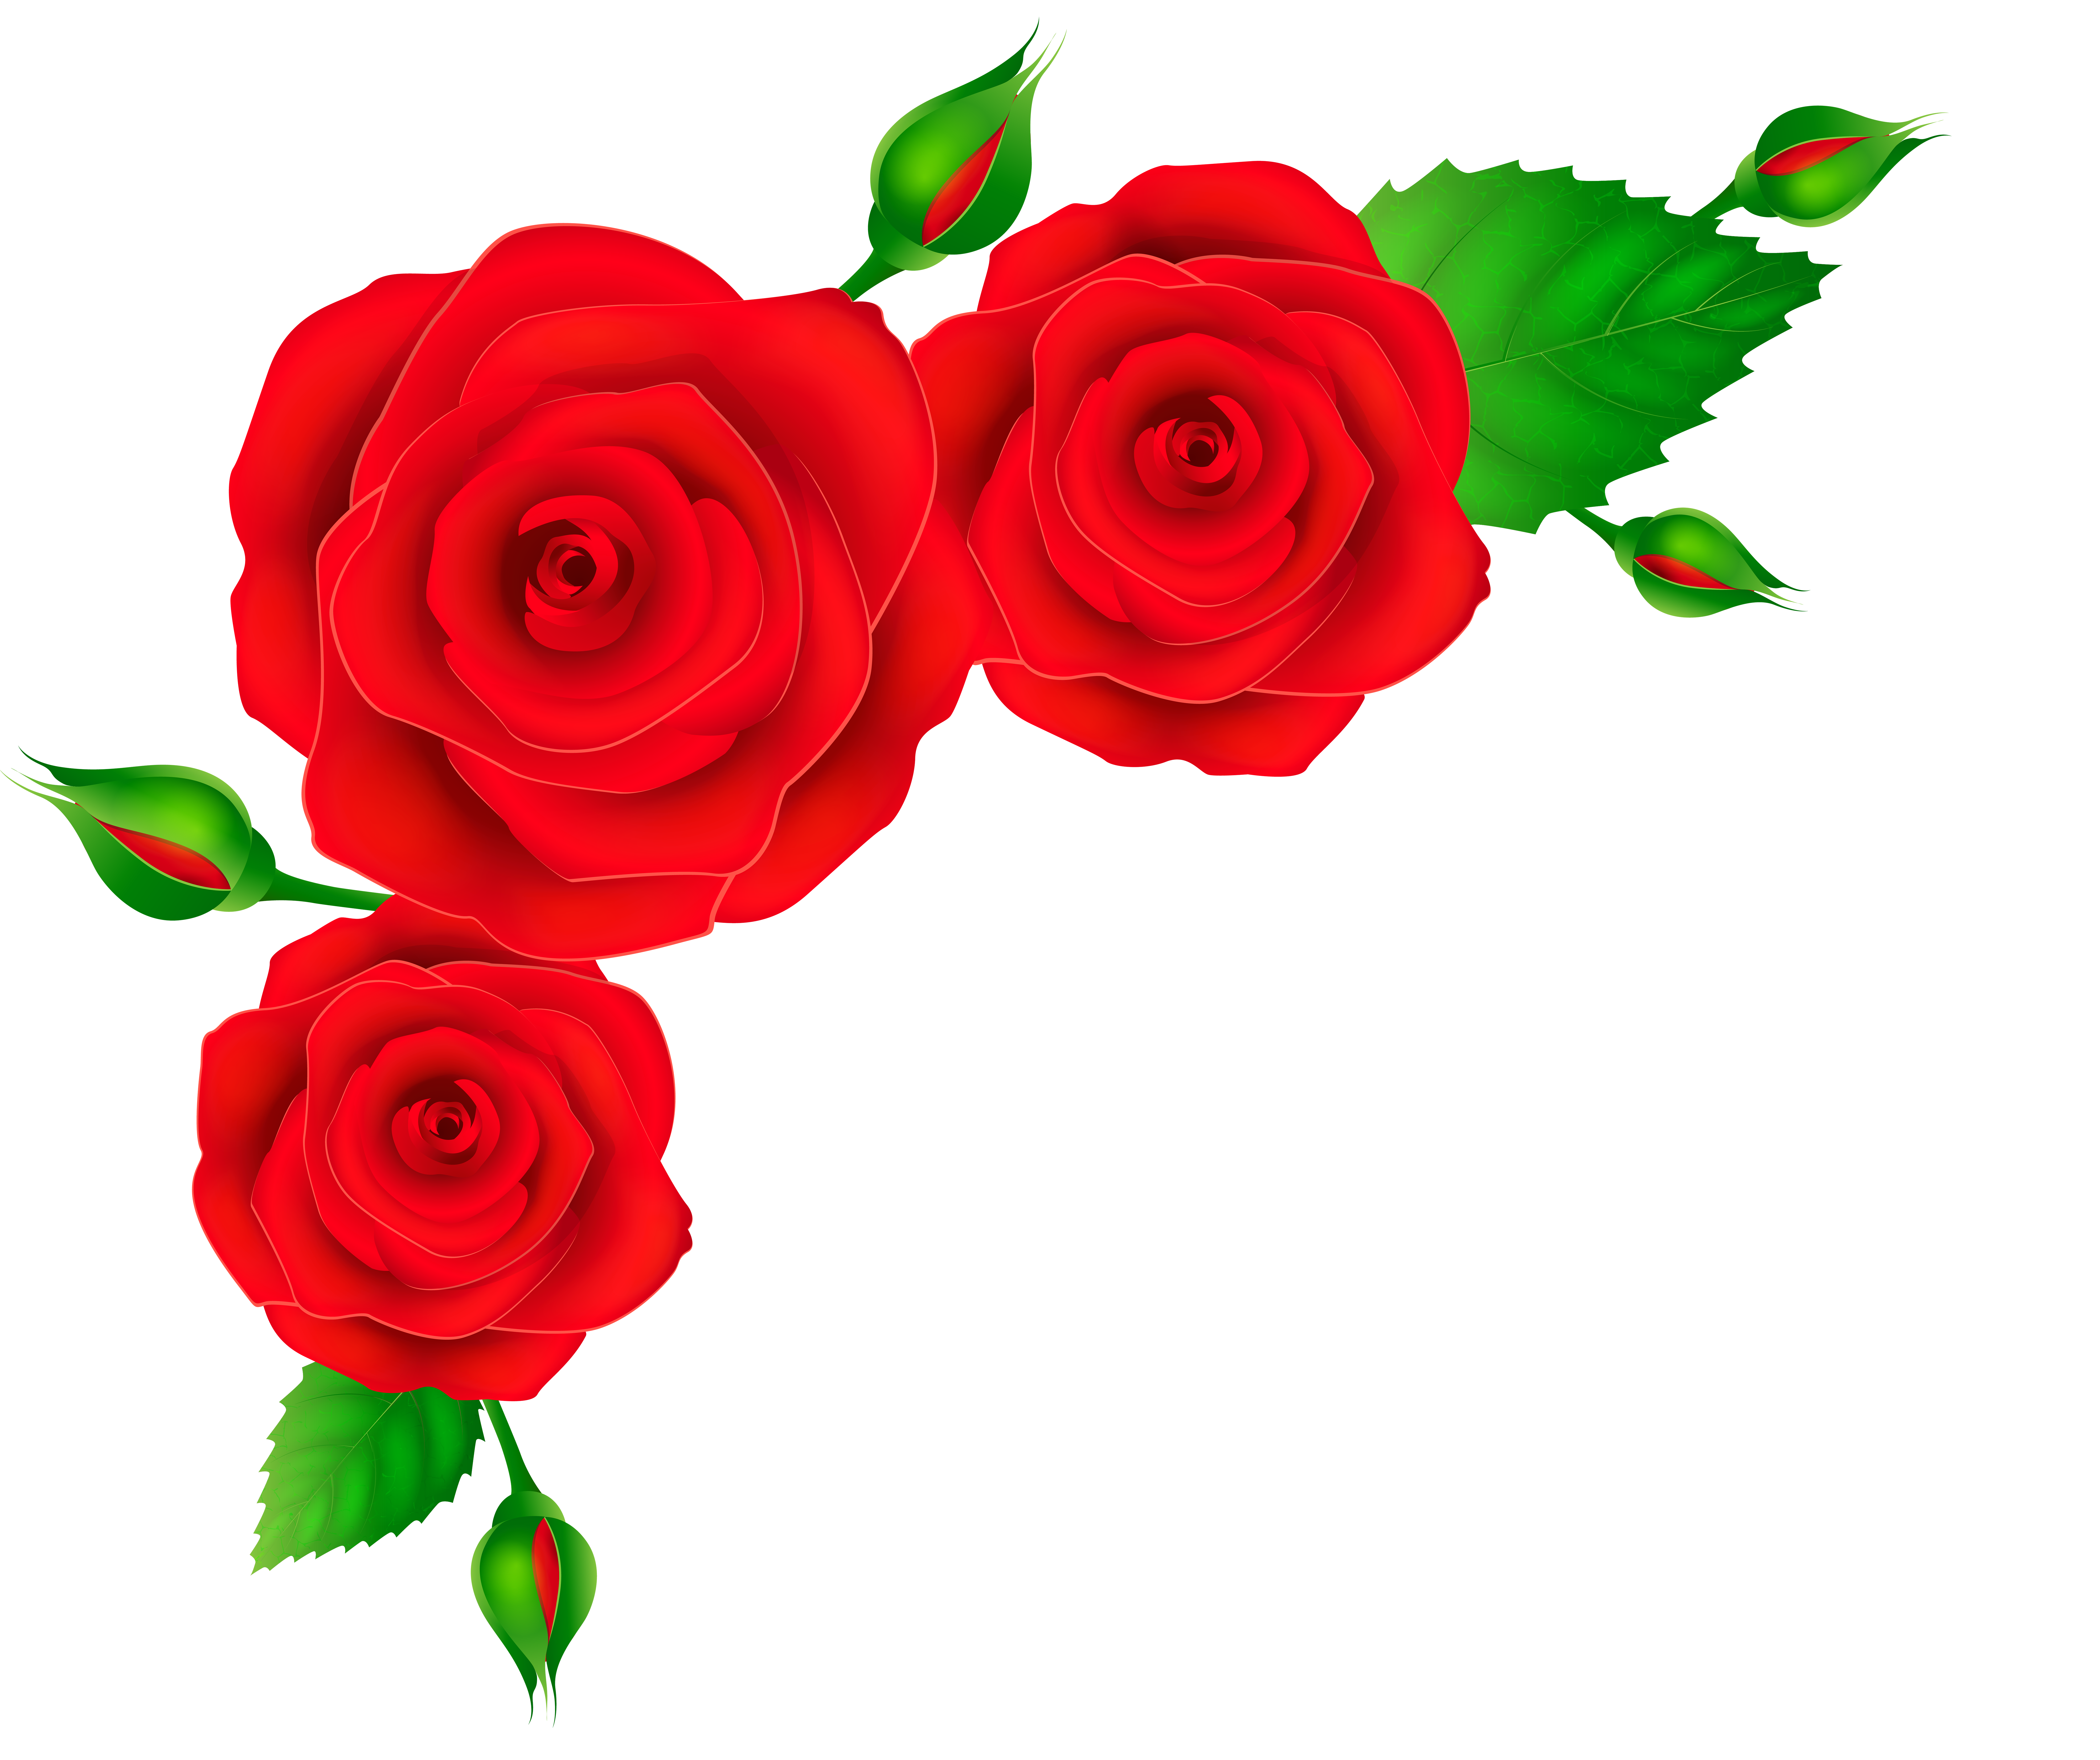 Roses clipart stick. Free rose corner cliparts